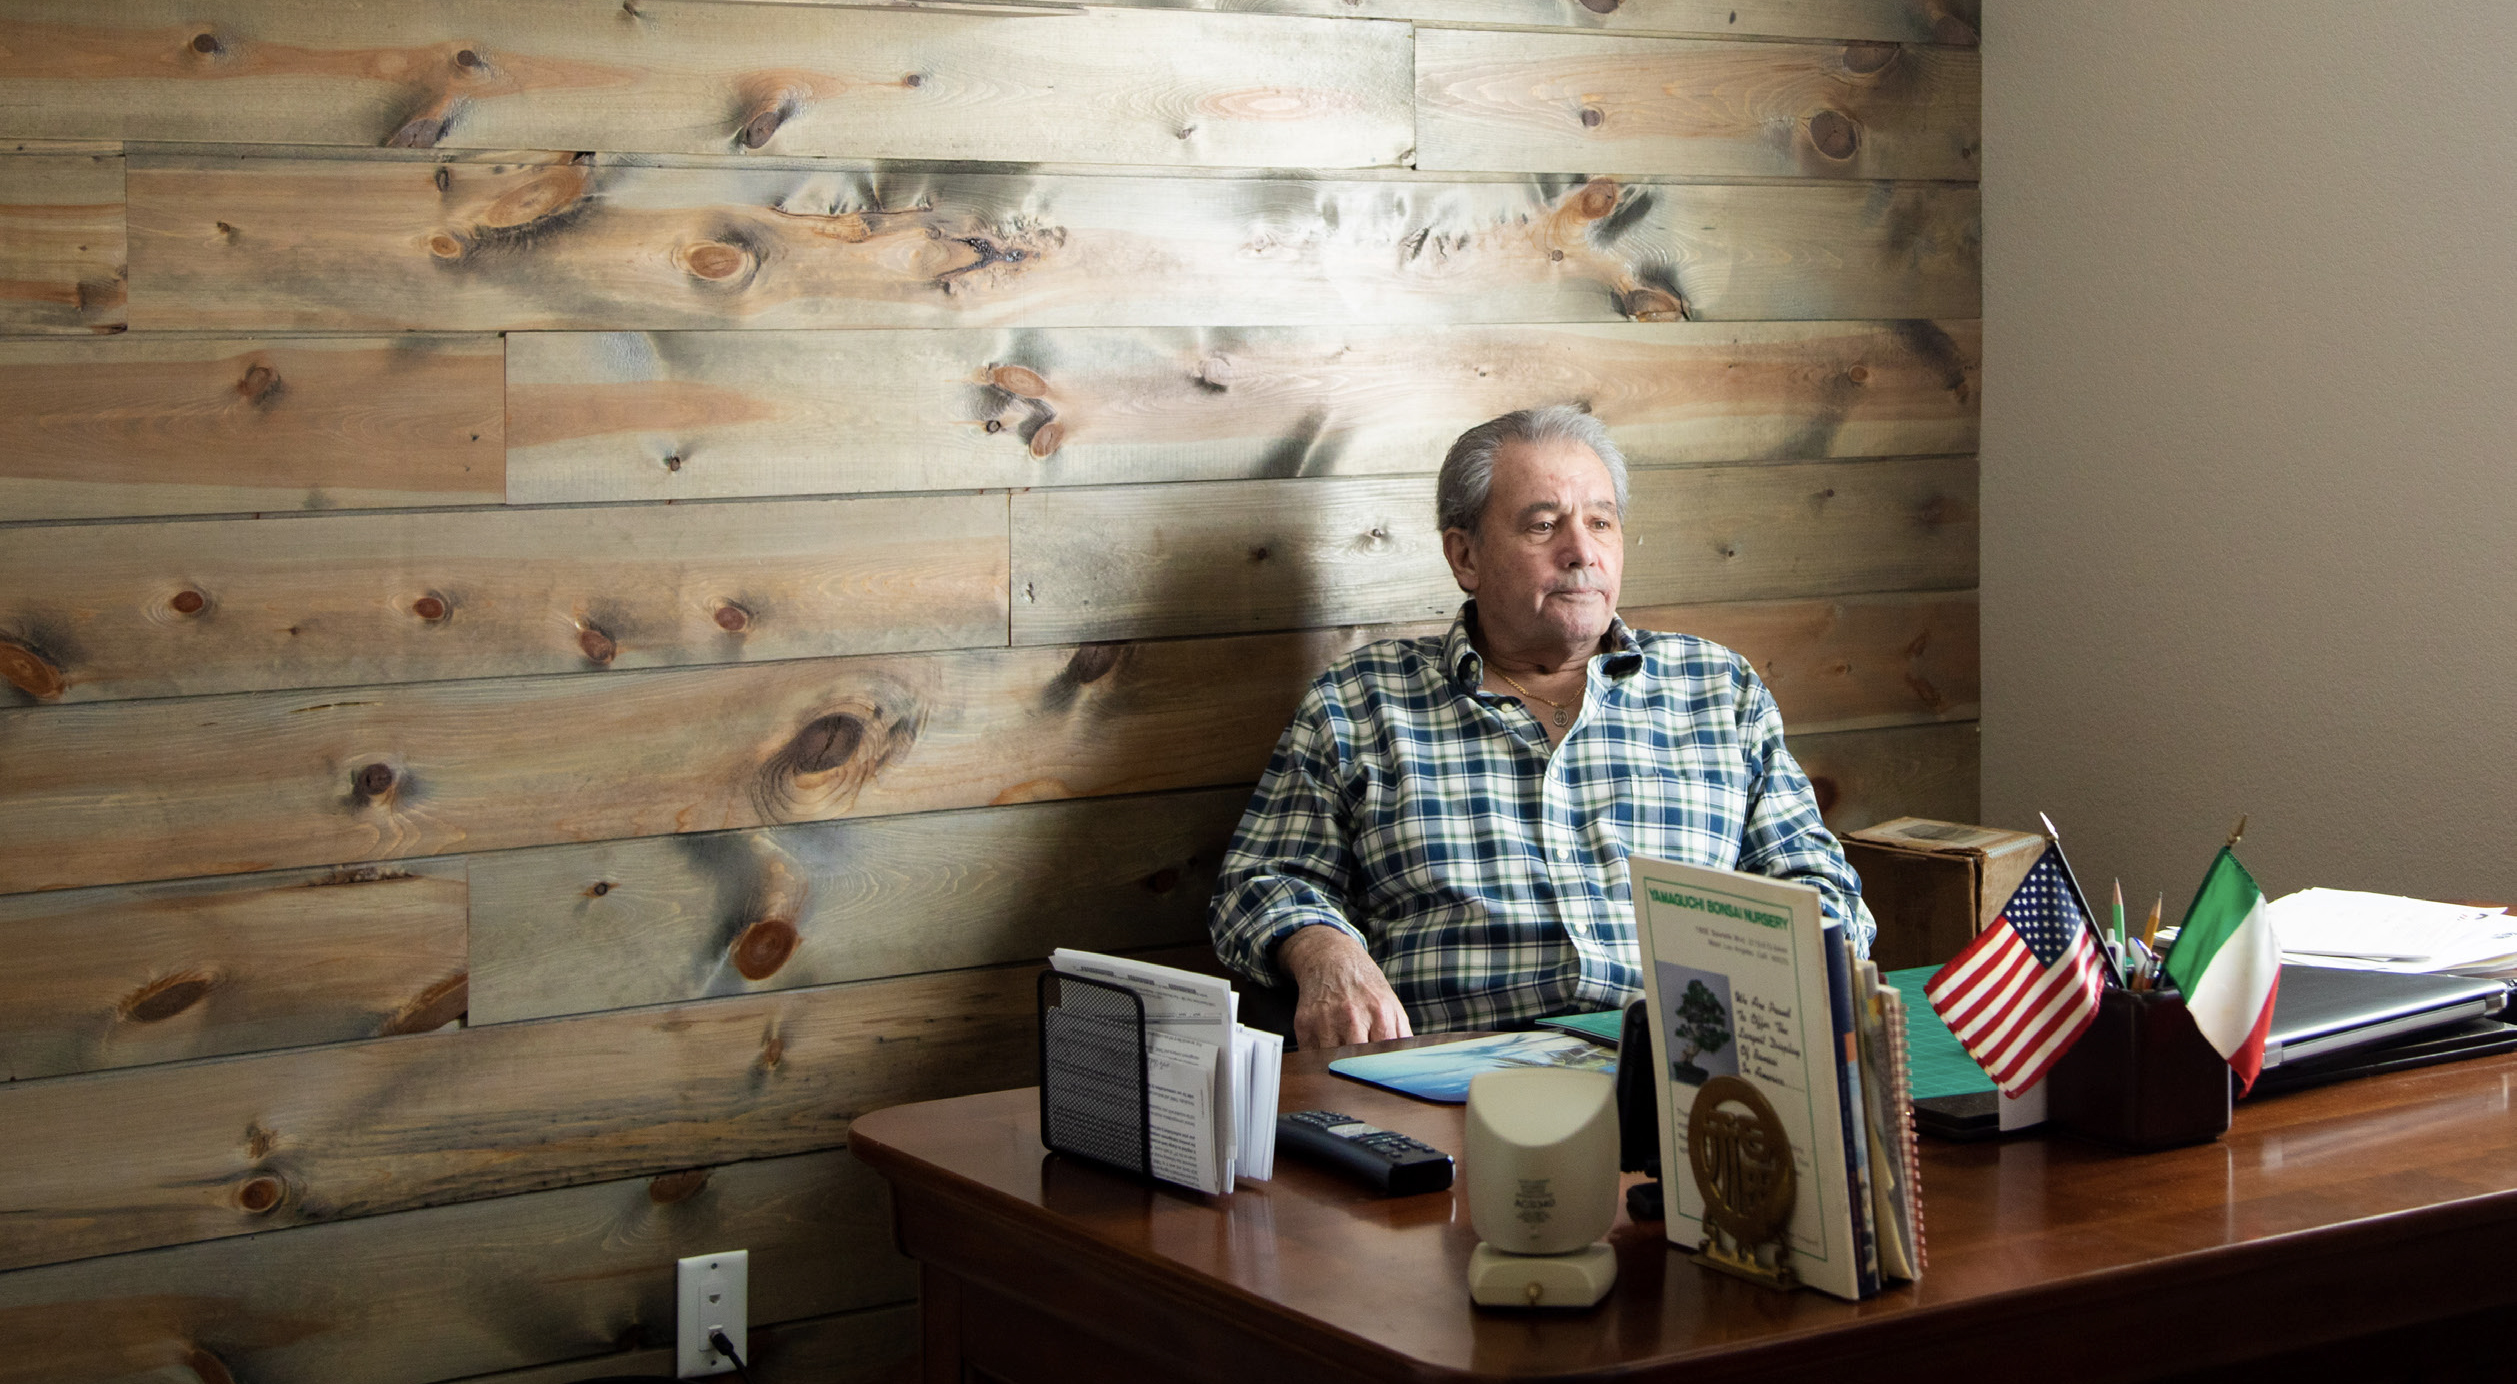 SALERNO began to build a wood plank wall in his office before his small cell lung cancer diagnosis. He stopped when he got sick and thought he wouldn't finish. But the new treatment he received has enabled him to finish the project. - PHOTO BY JOLIE RODRIGUEZ